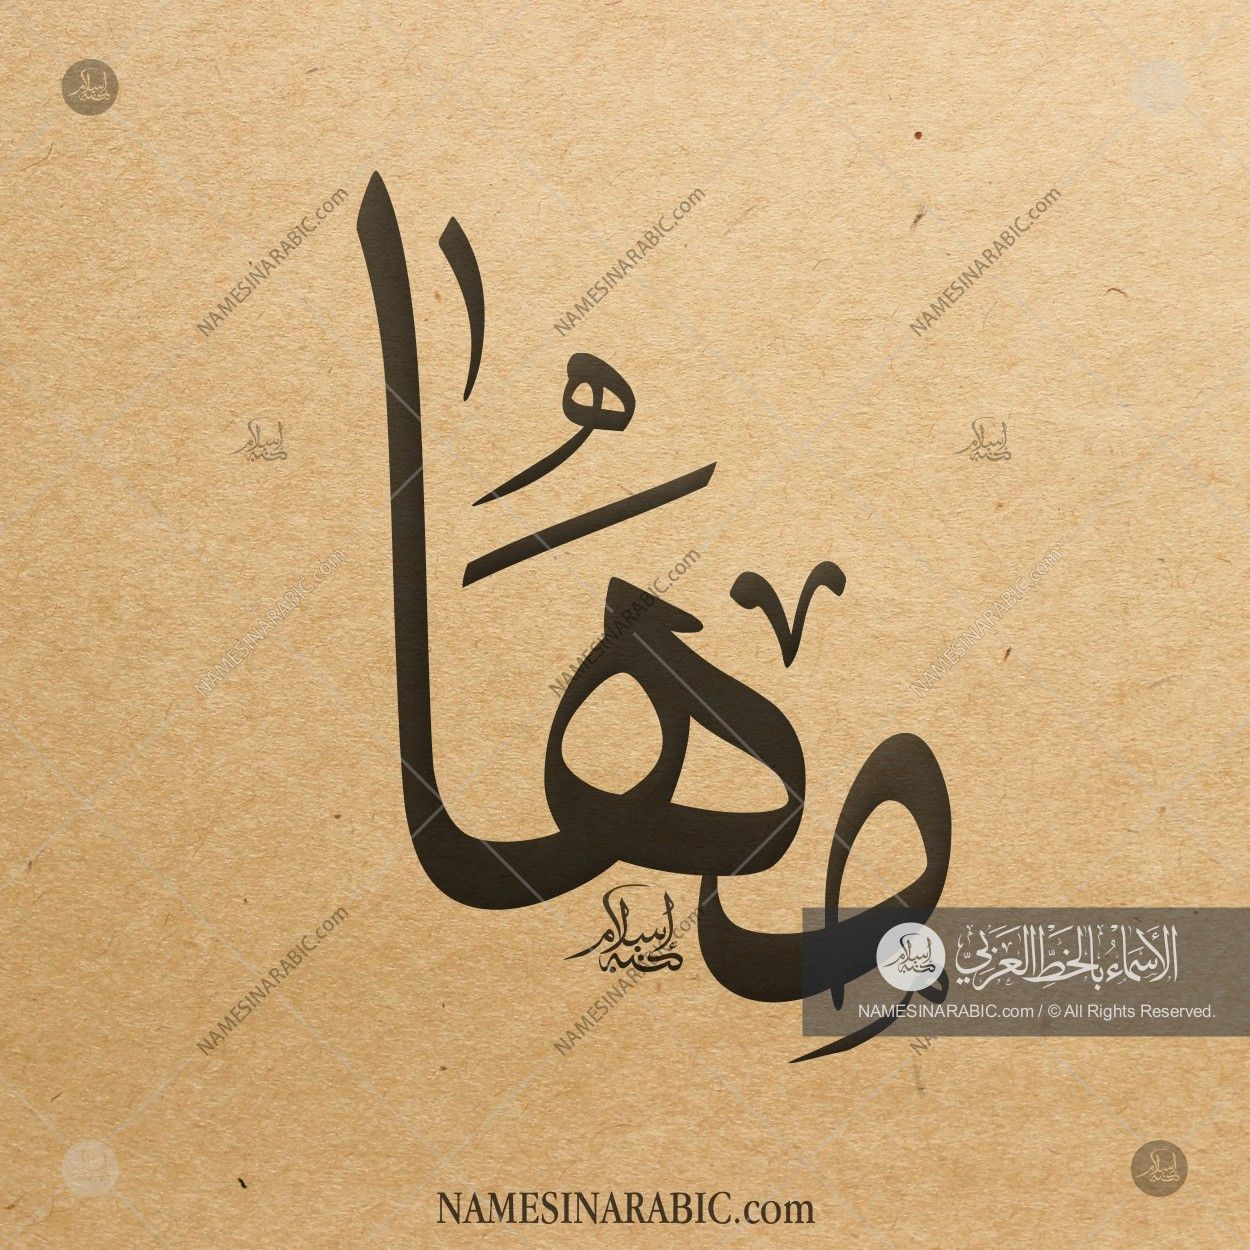 Maha مها Names In Arabic Calligraphy Name 5258 Calligraphy Name Calligraphy Hand Lettering Art